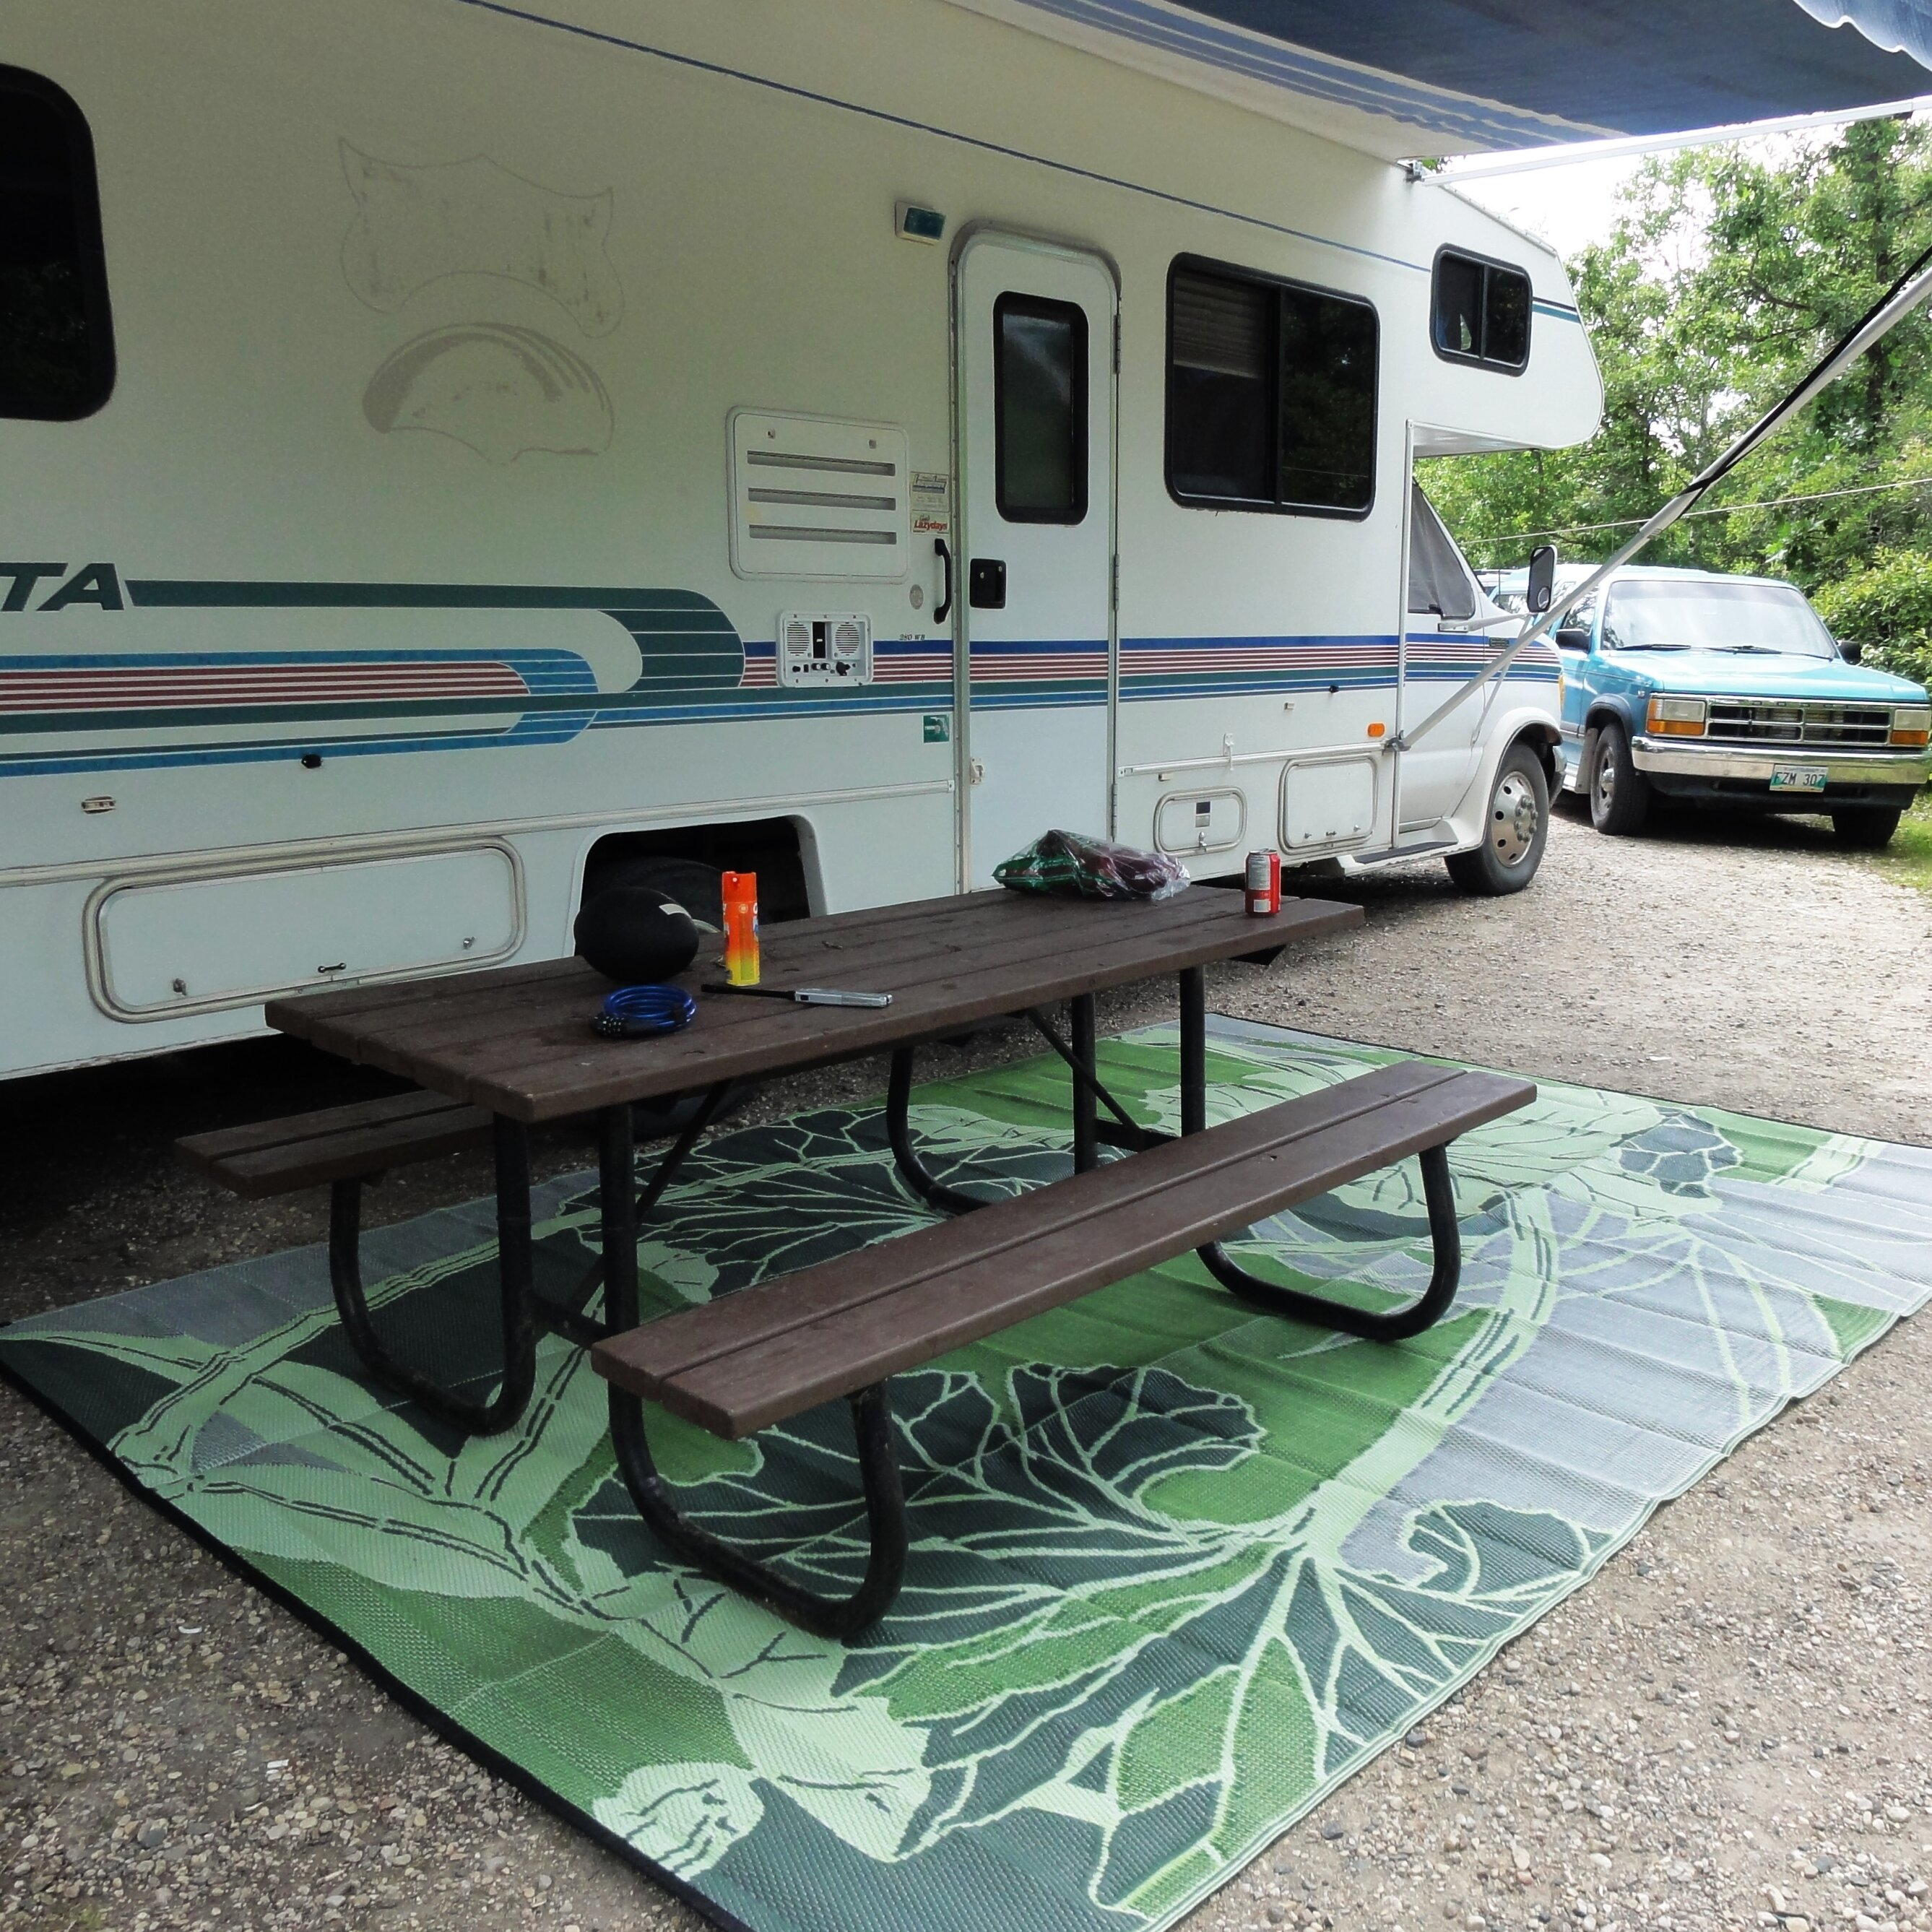 Awesome B.b.begonia Blossom RV/Camping/Patio Mat Green/Grey Outdoor Area Rug